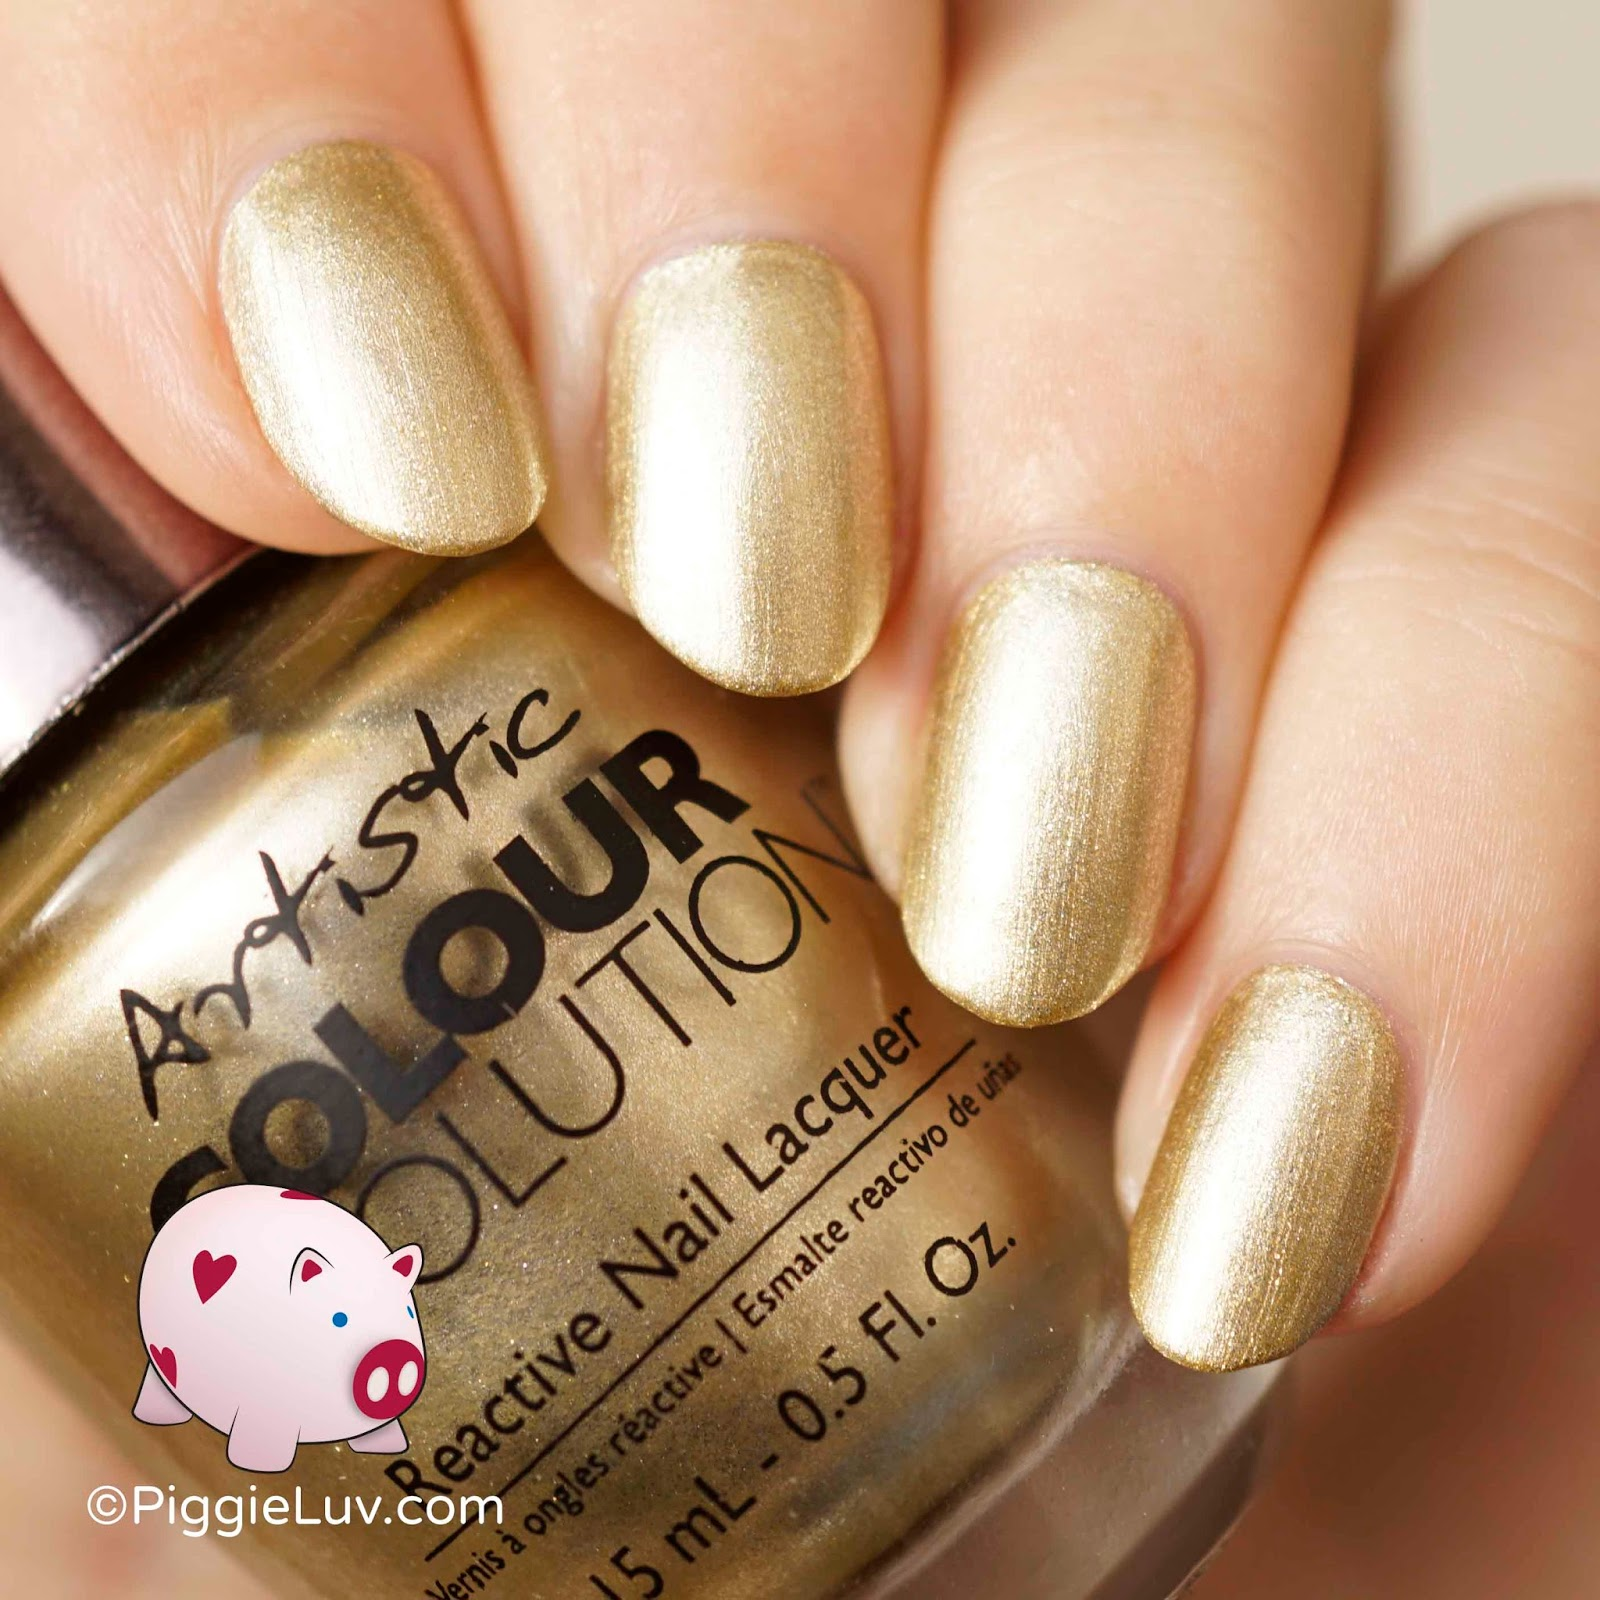 Piggieluv Artistic Nail Design Holiday Nights Collection Swatches